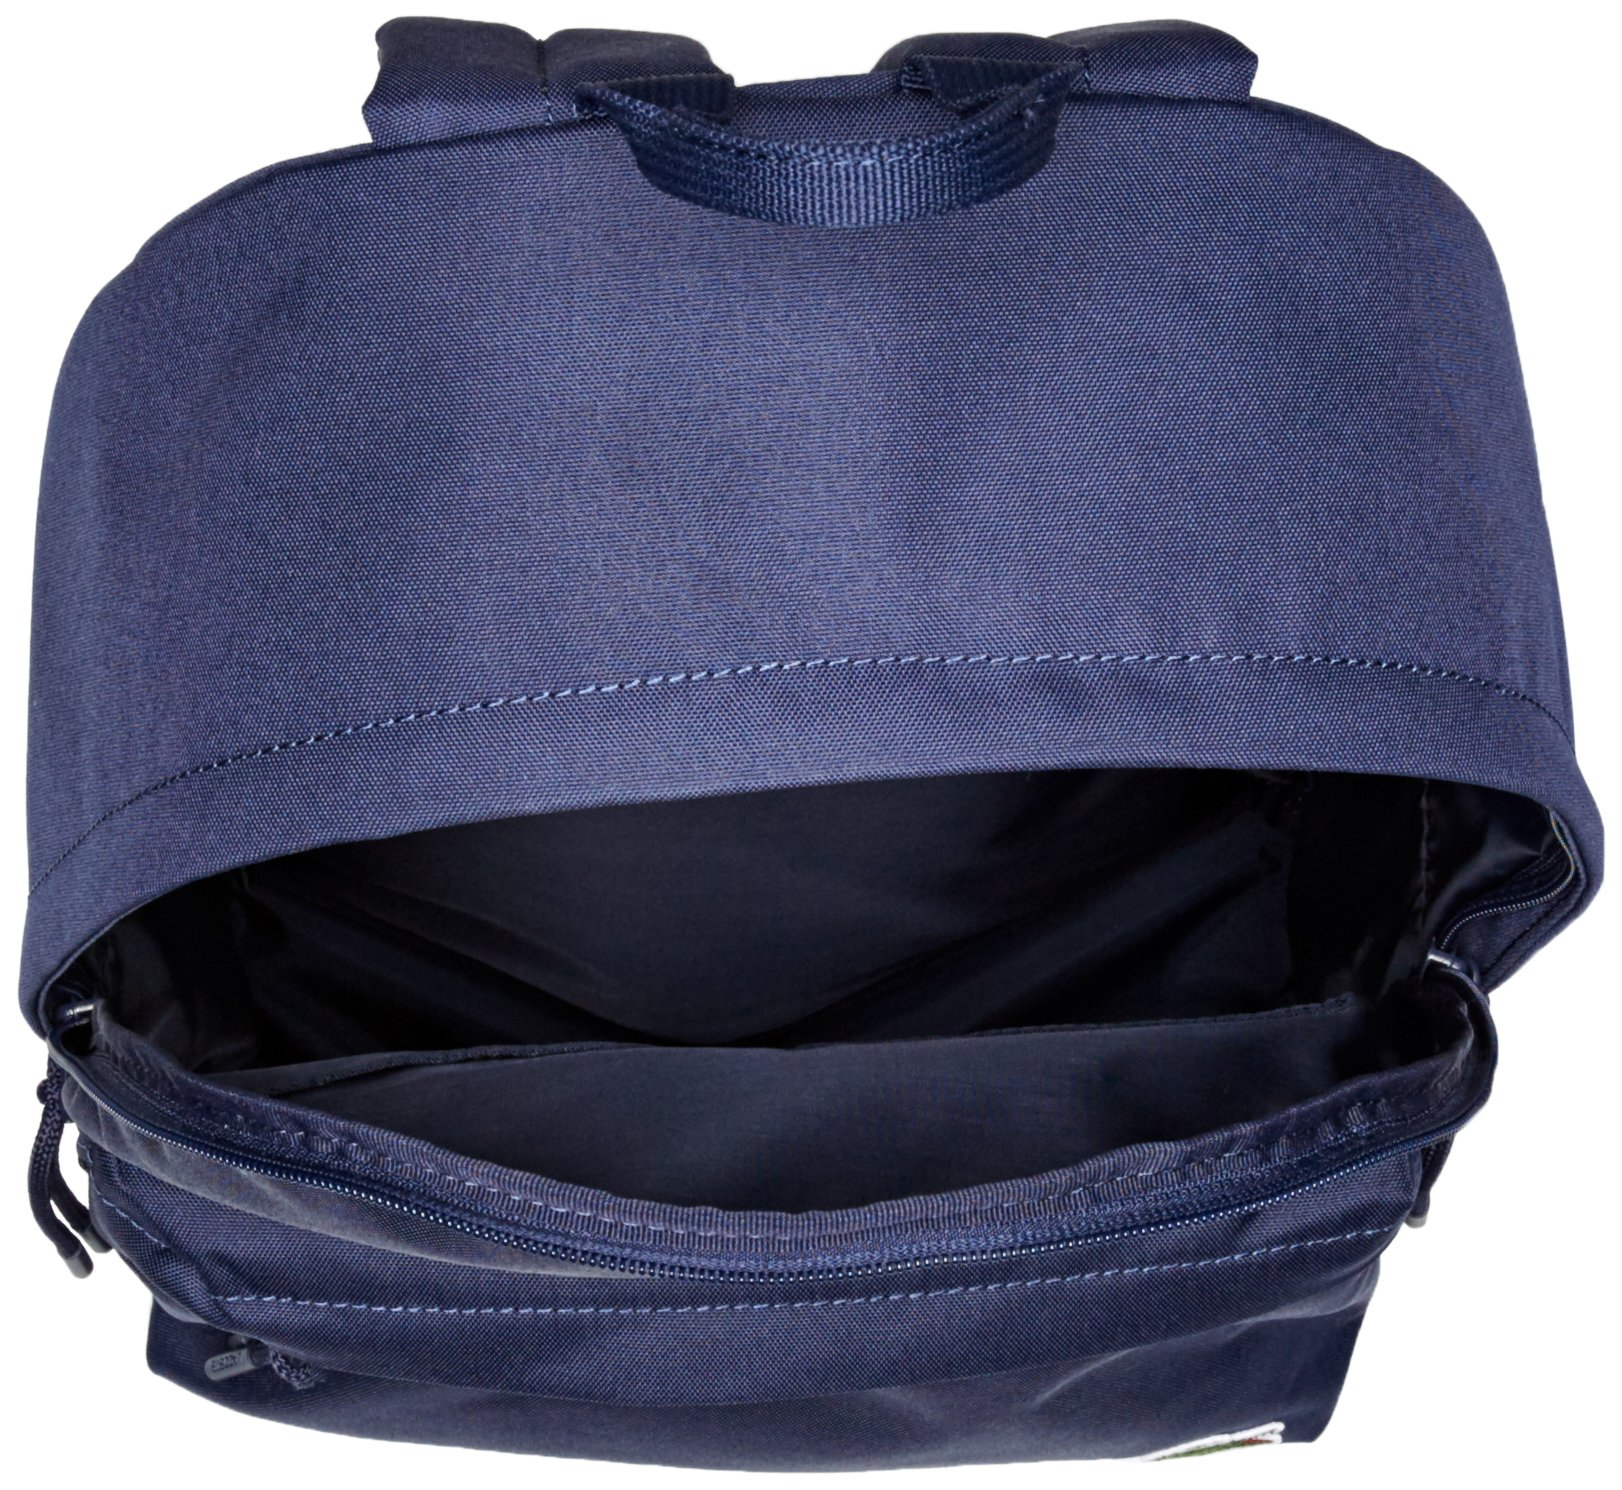 Lacoste Men's Neocroc Backpack, Peacoat by Lacoste (Image #3)